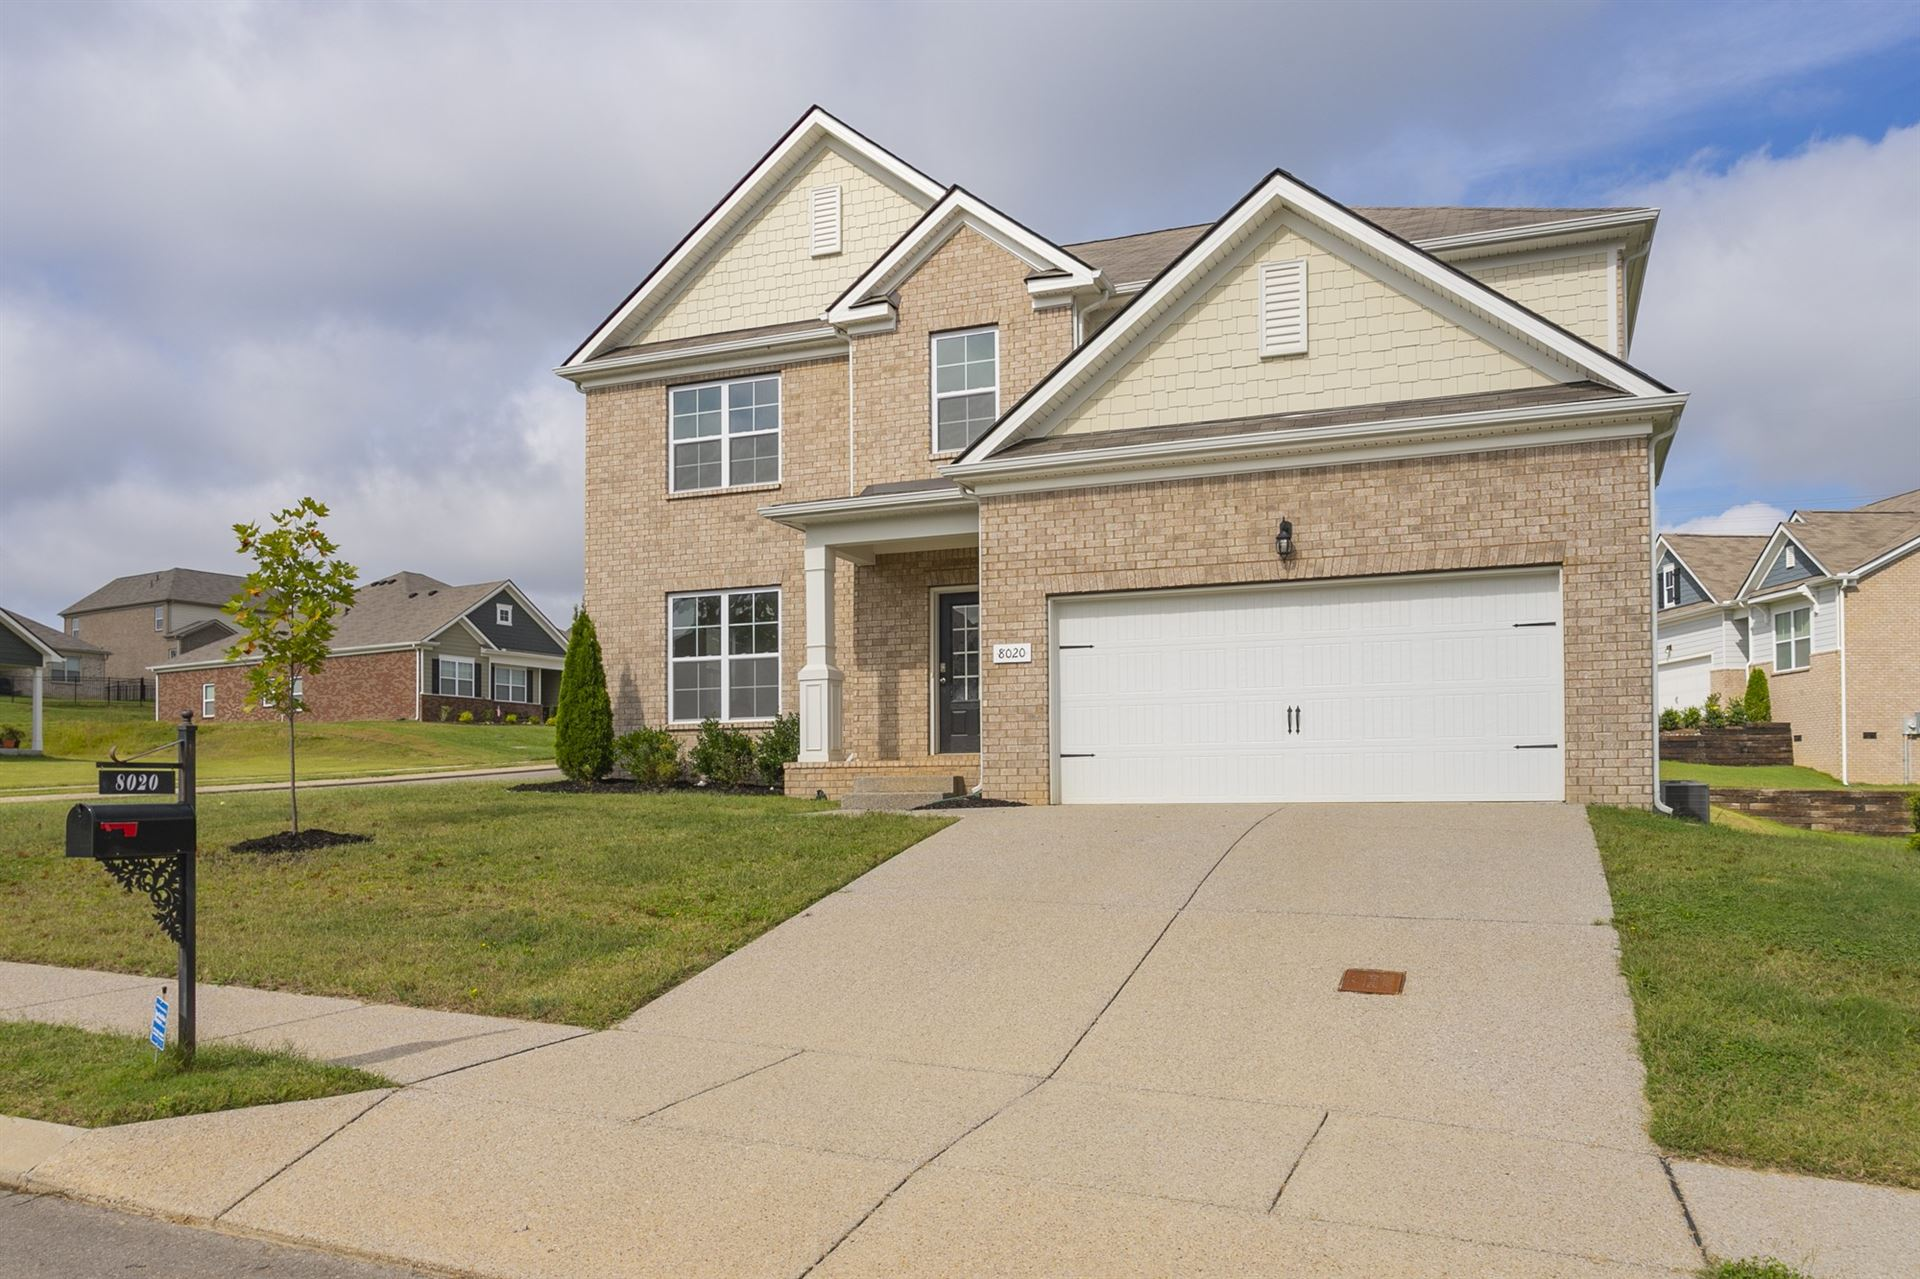 Photo of 8020 Forest Hills Drive, Spring Hill, TN 37174 (MLS # 2296080)